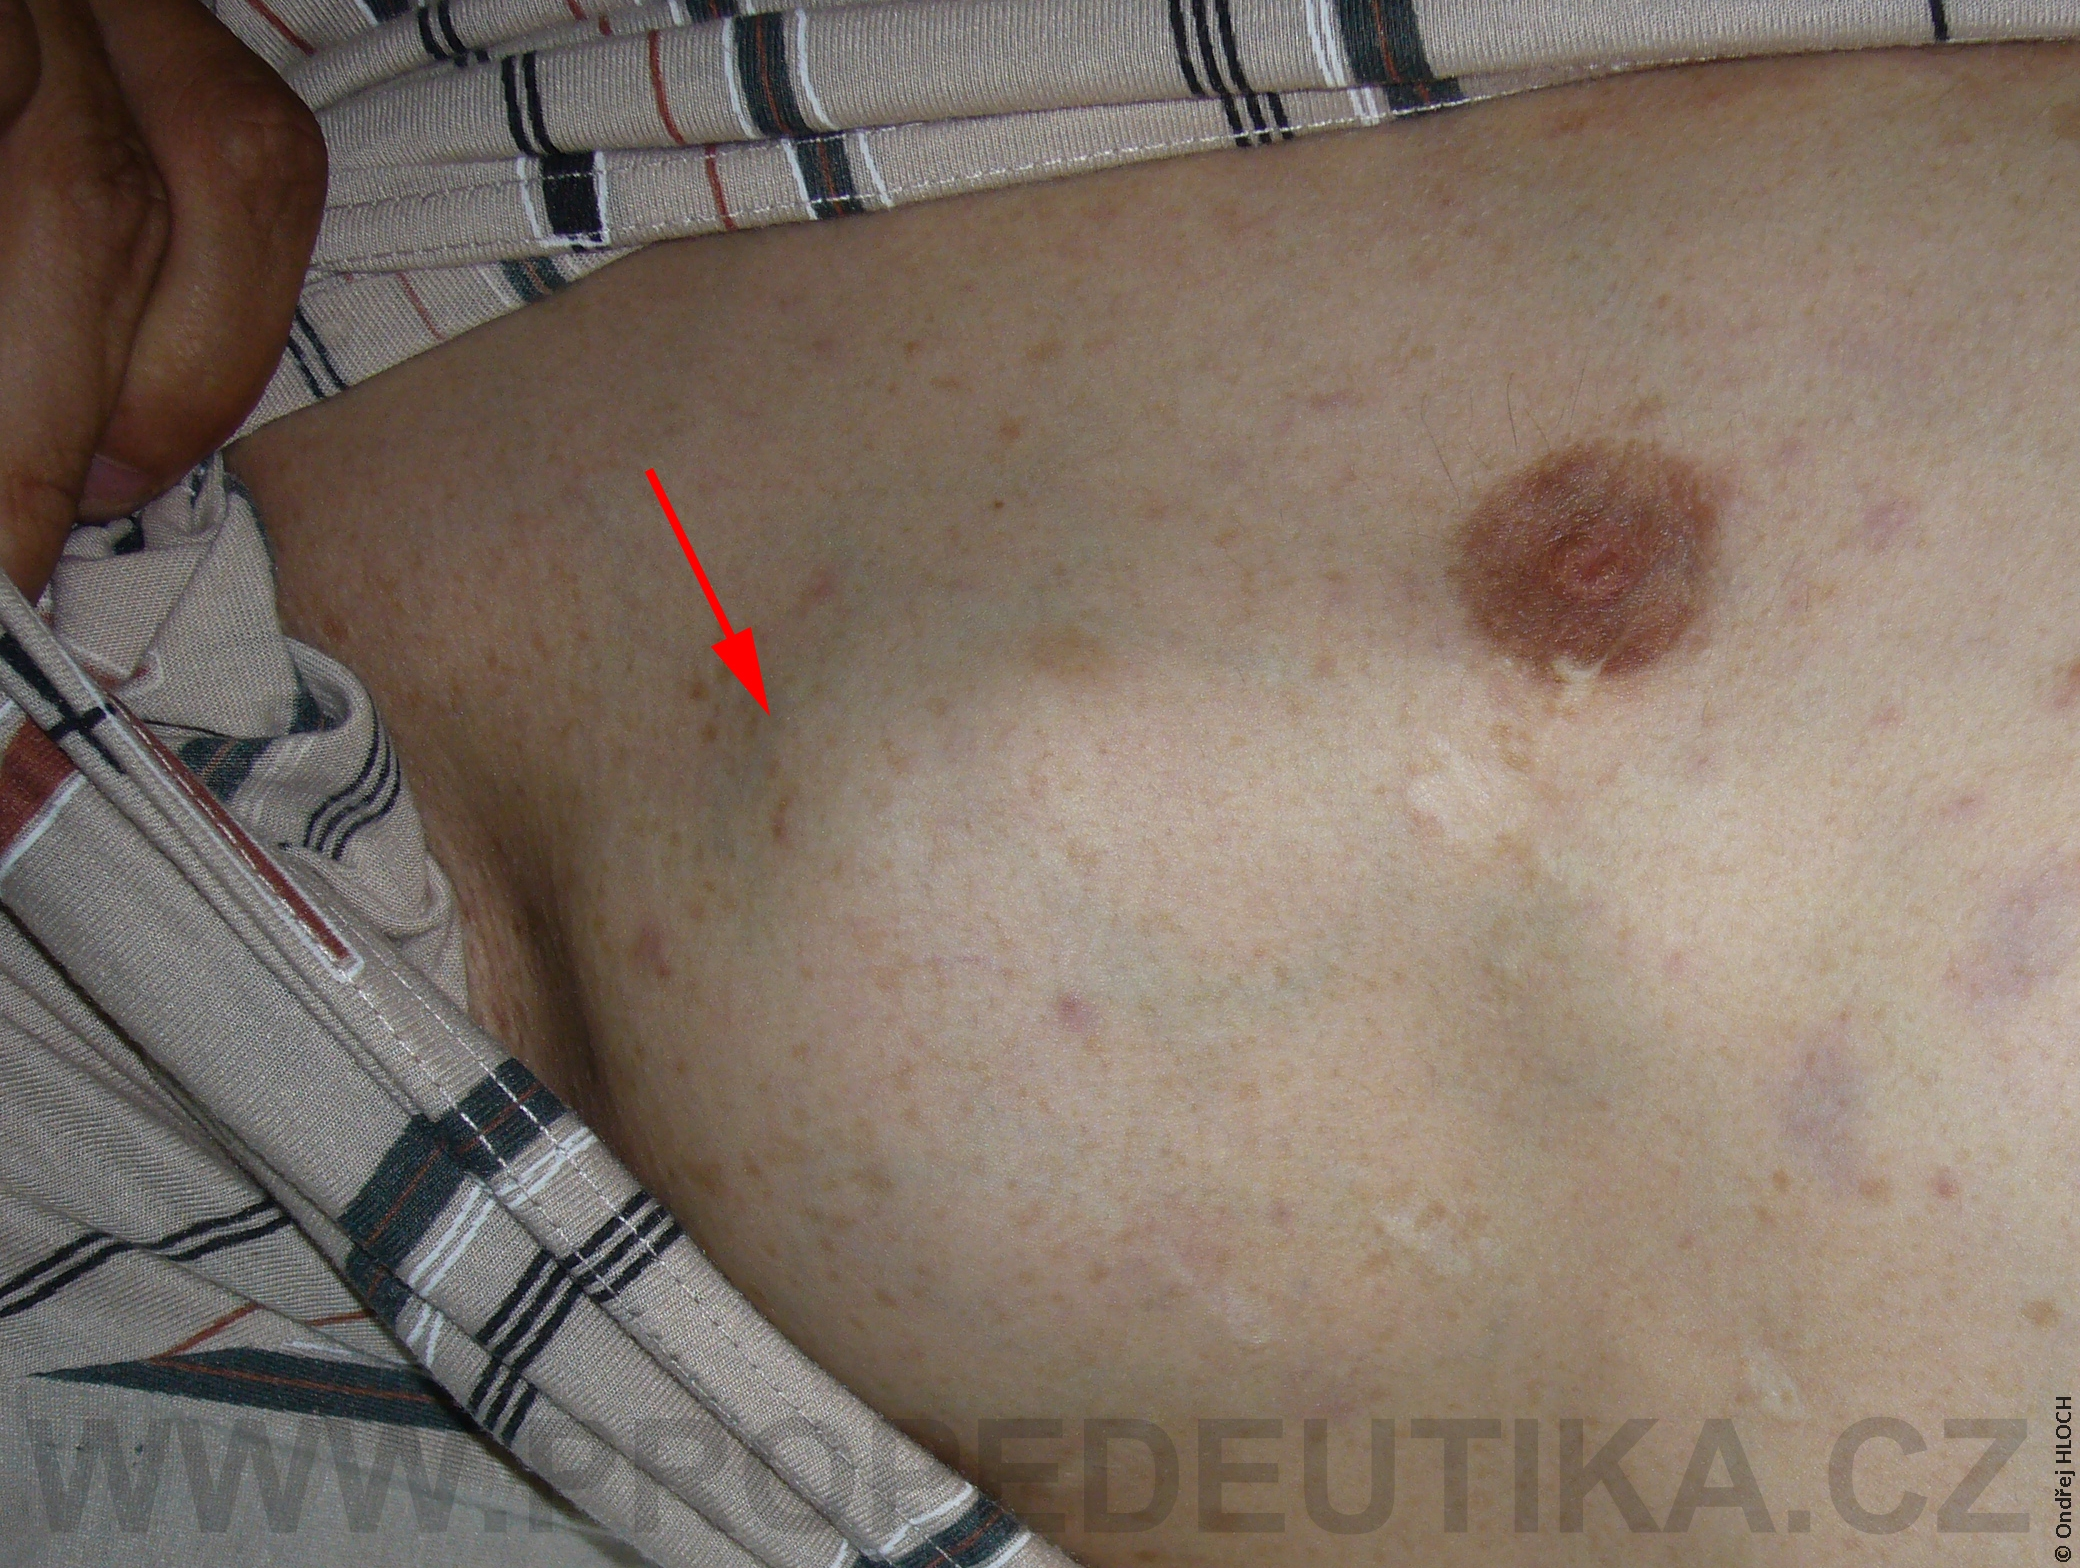 neurofibromatosa1_full